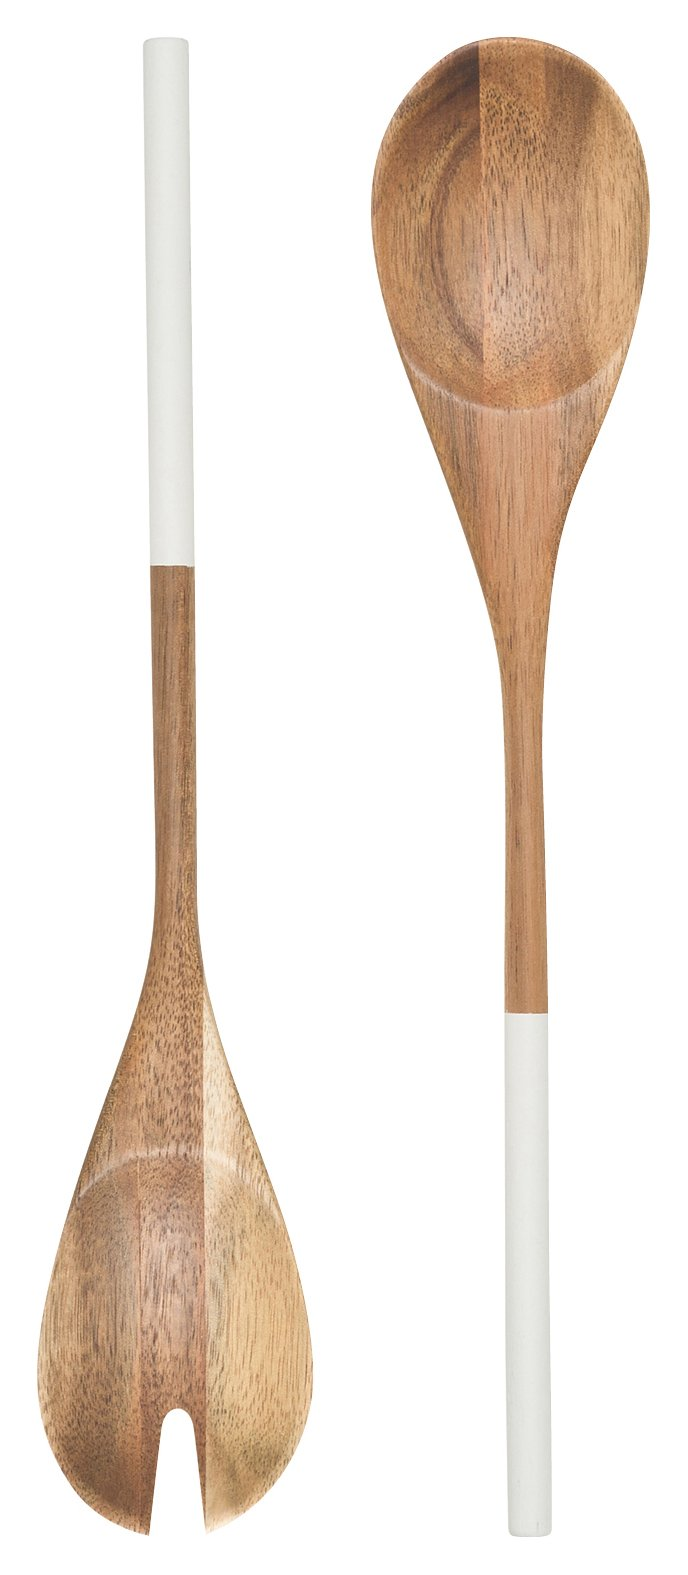 Now Designs Acacia Wood Salad Servers, Set of Two, Dipped White Handle